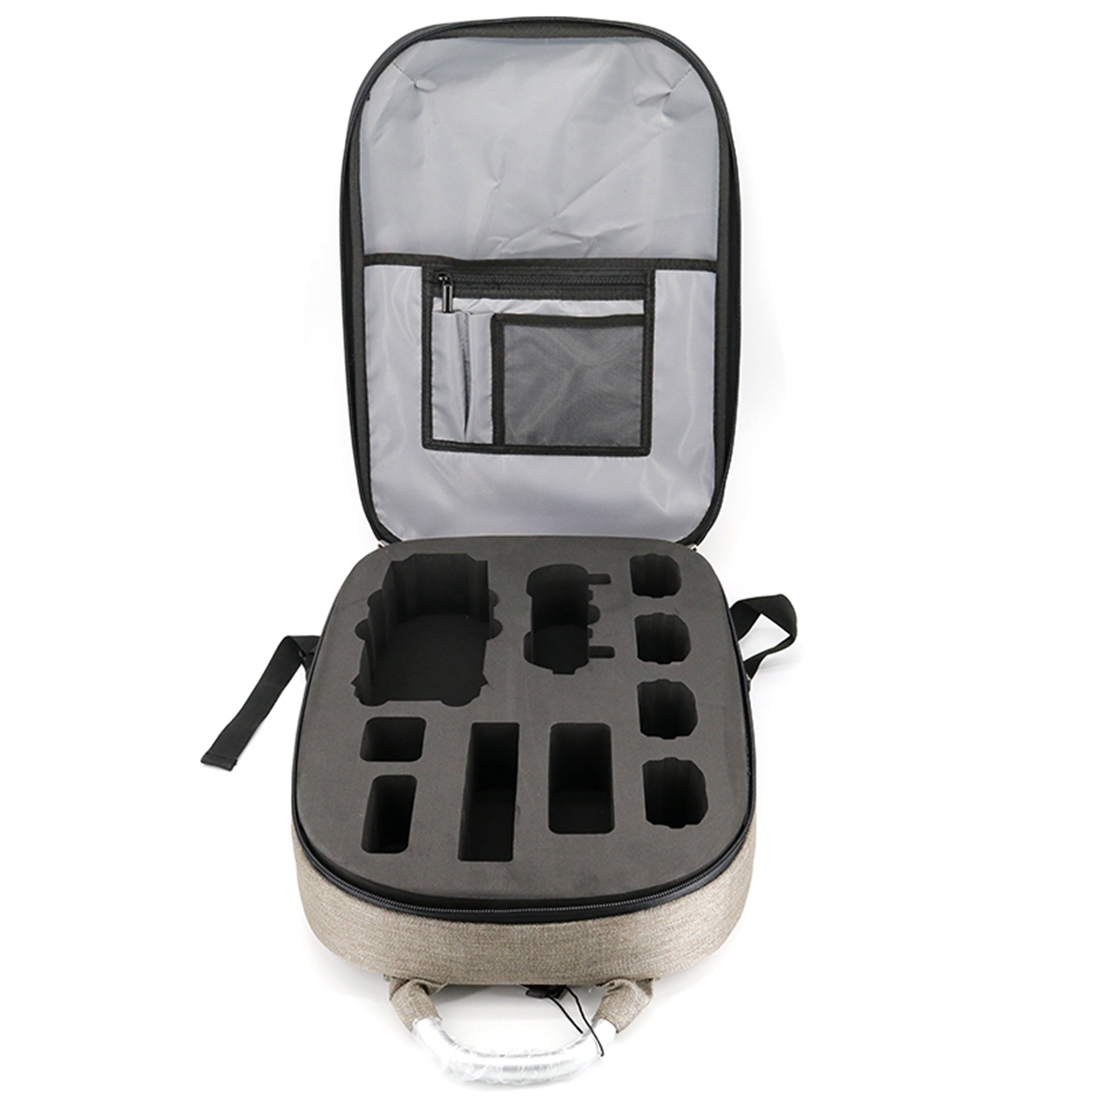 HOBBYINRC Waterproof HardShell Backpack Case Bag Sticker Battery Charger Storage Bag for DJI Mavic Pro Accessories White